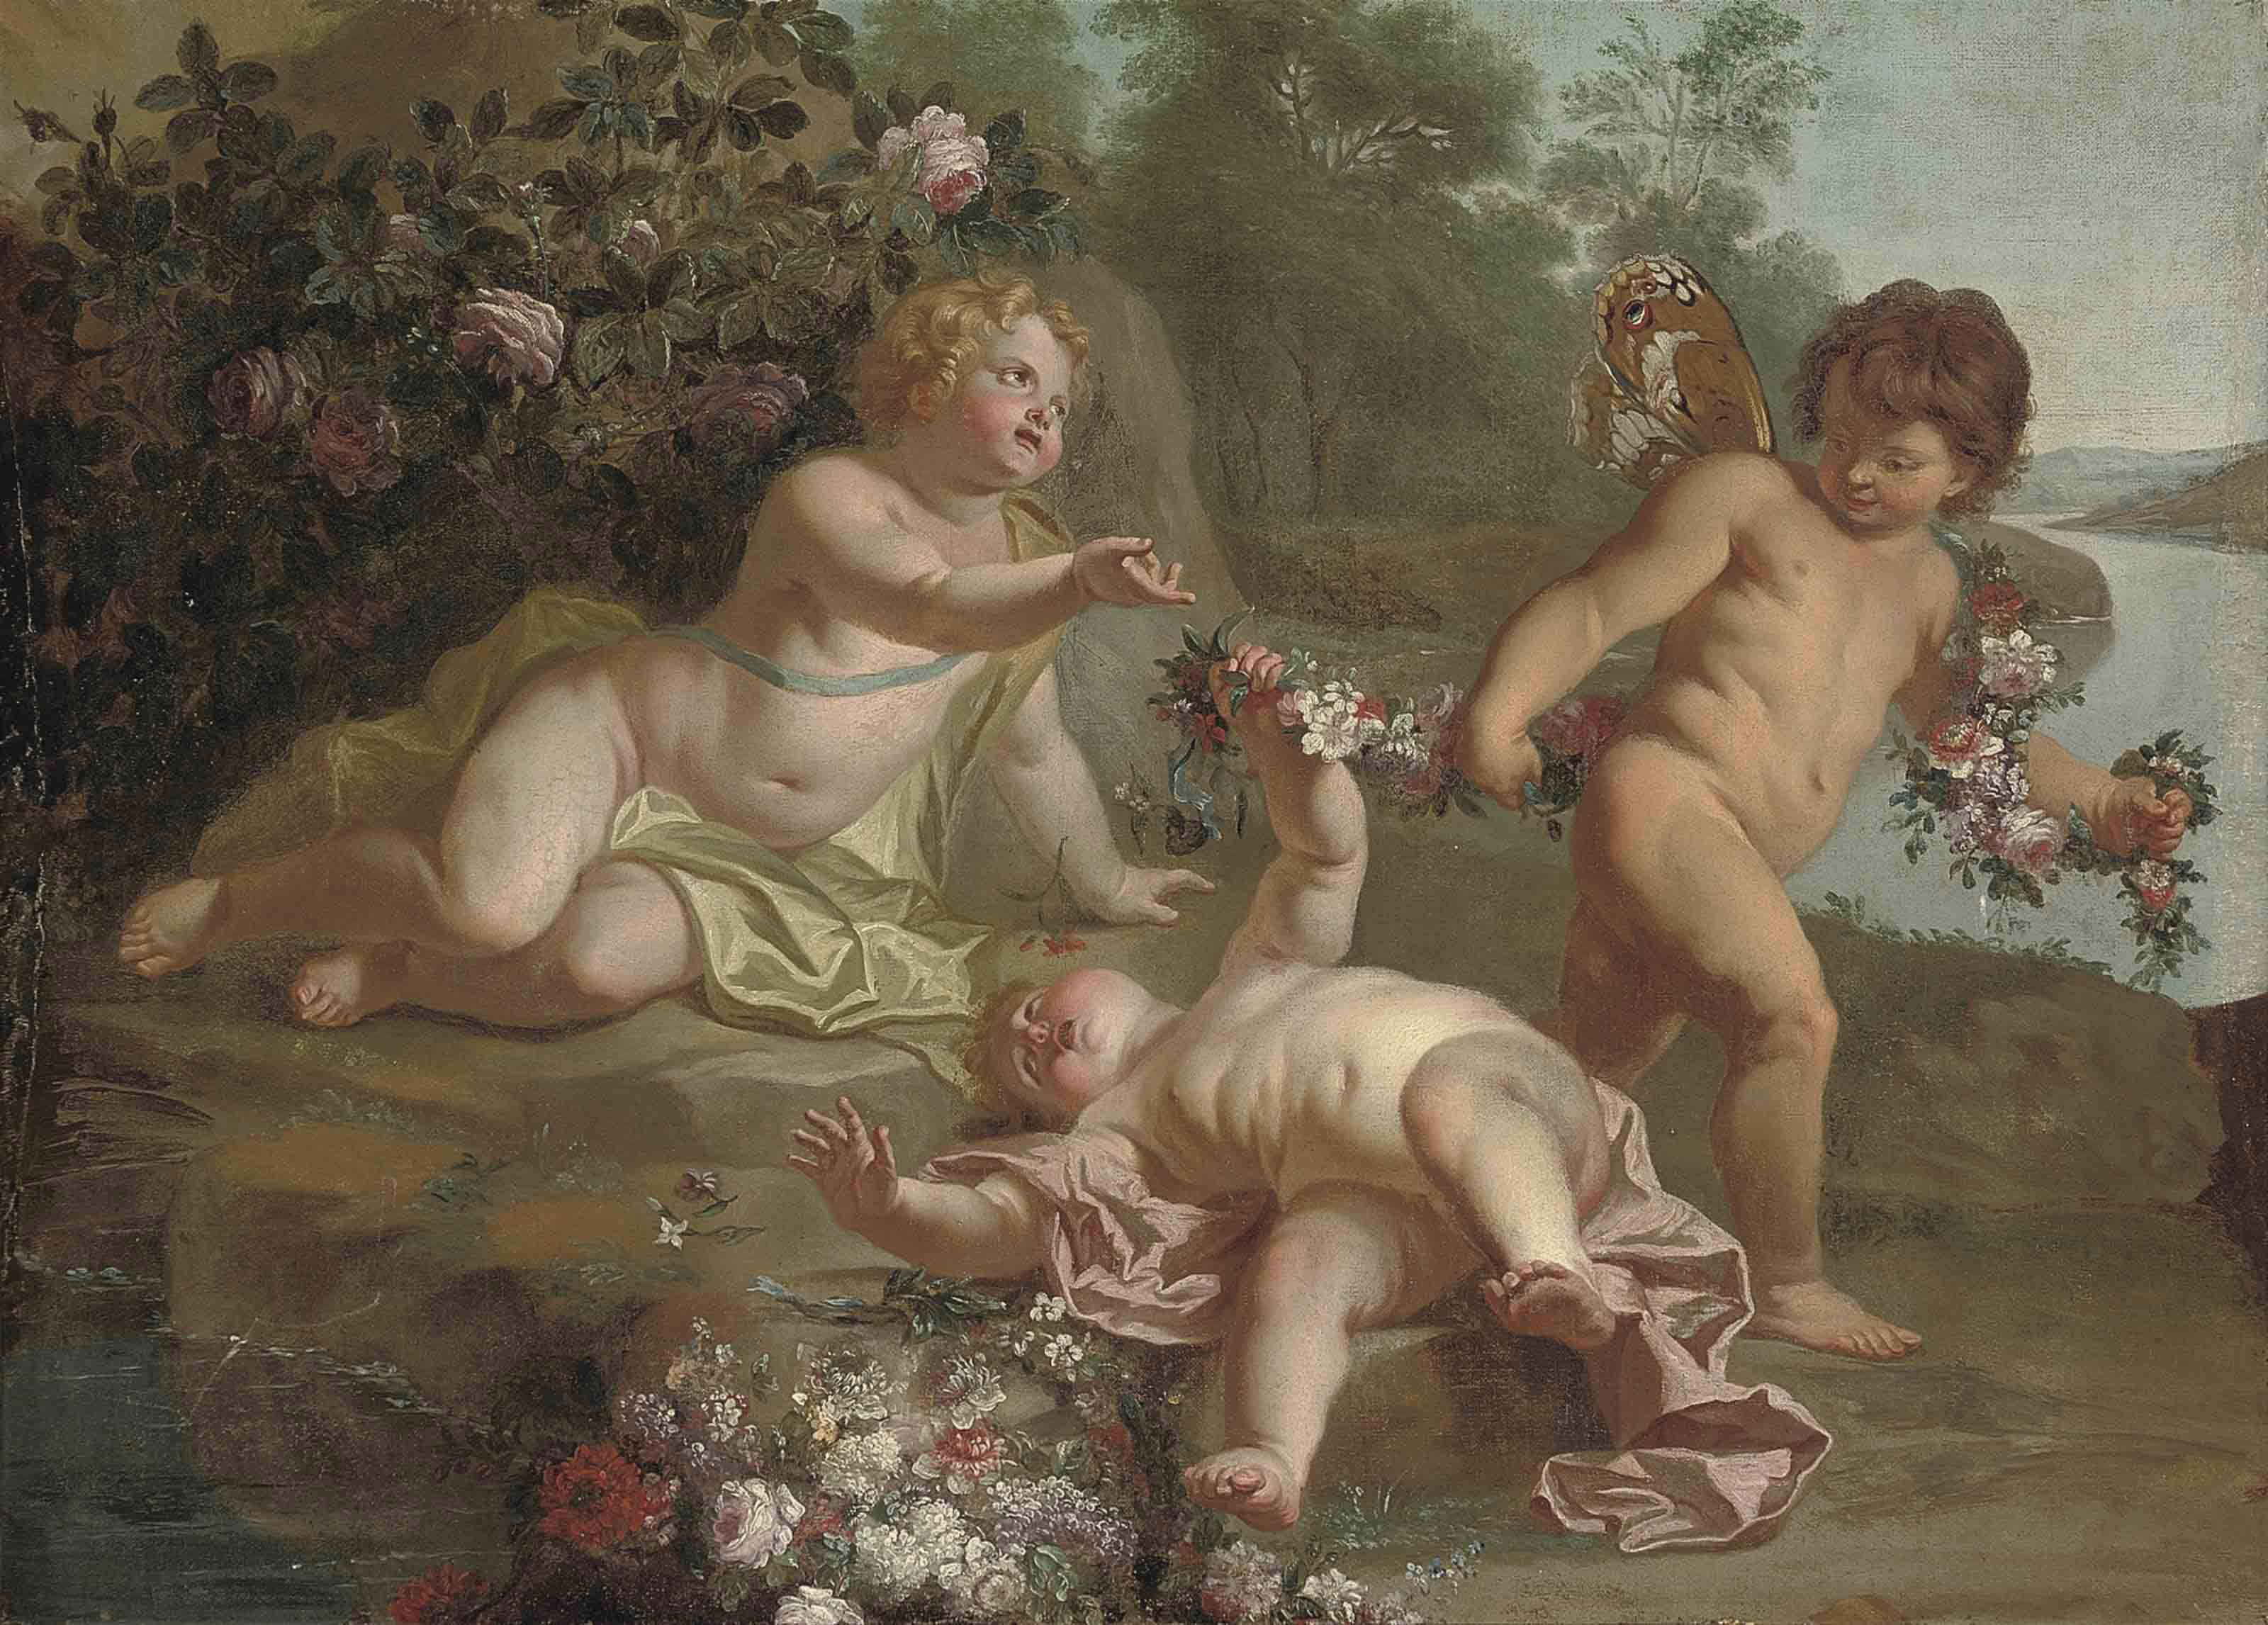 Putti disporting with garlands of flowers beside a lake